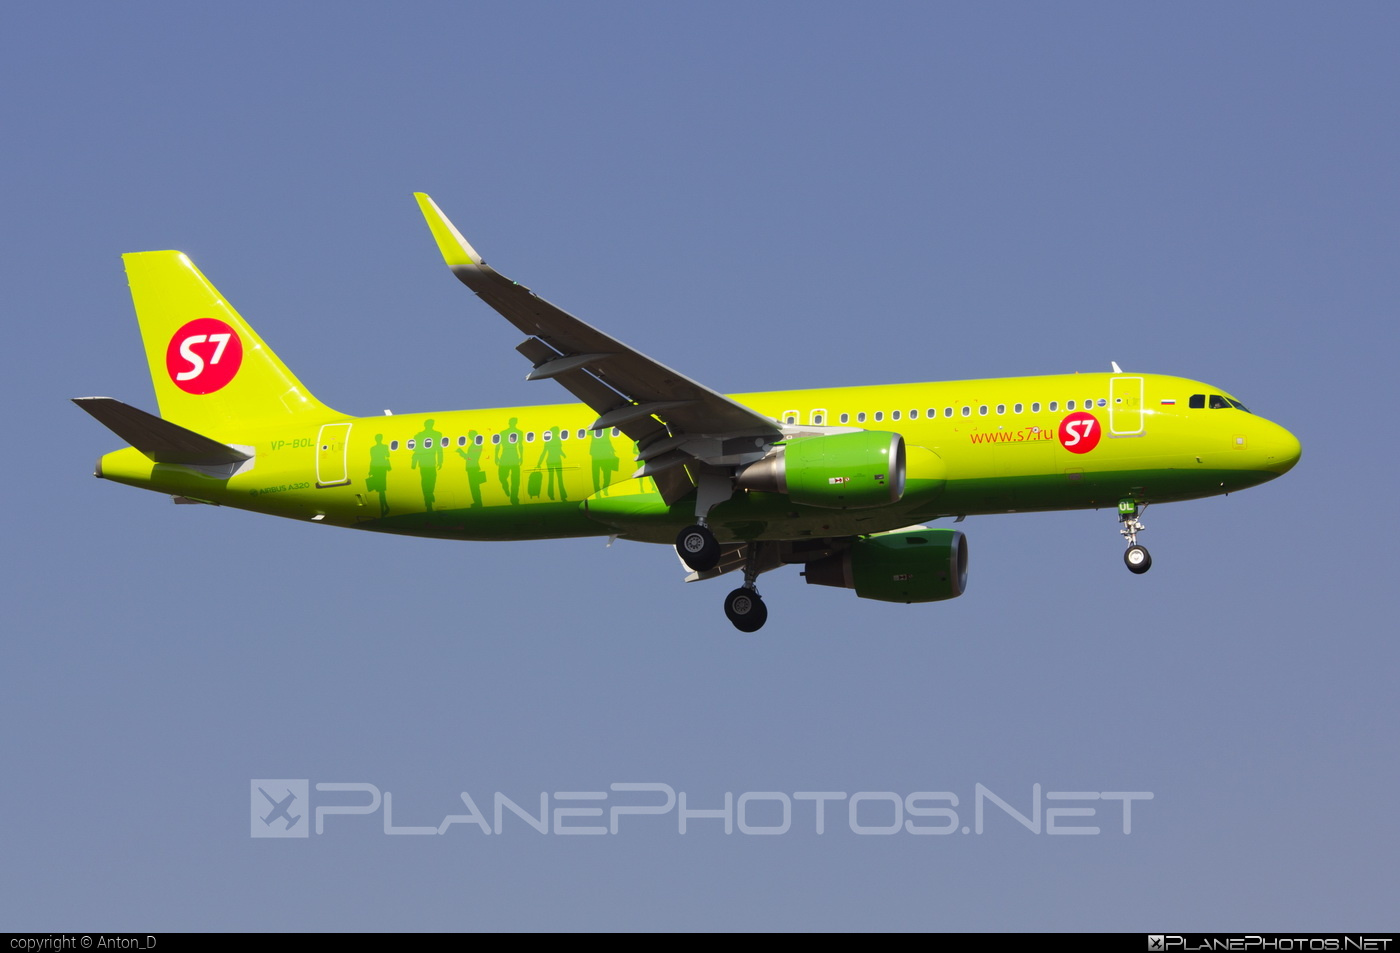 Airbus A320-214 - VP-BOL operated by S7 Airlines #a320 #a320family #airbus #airbus320